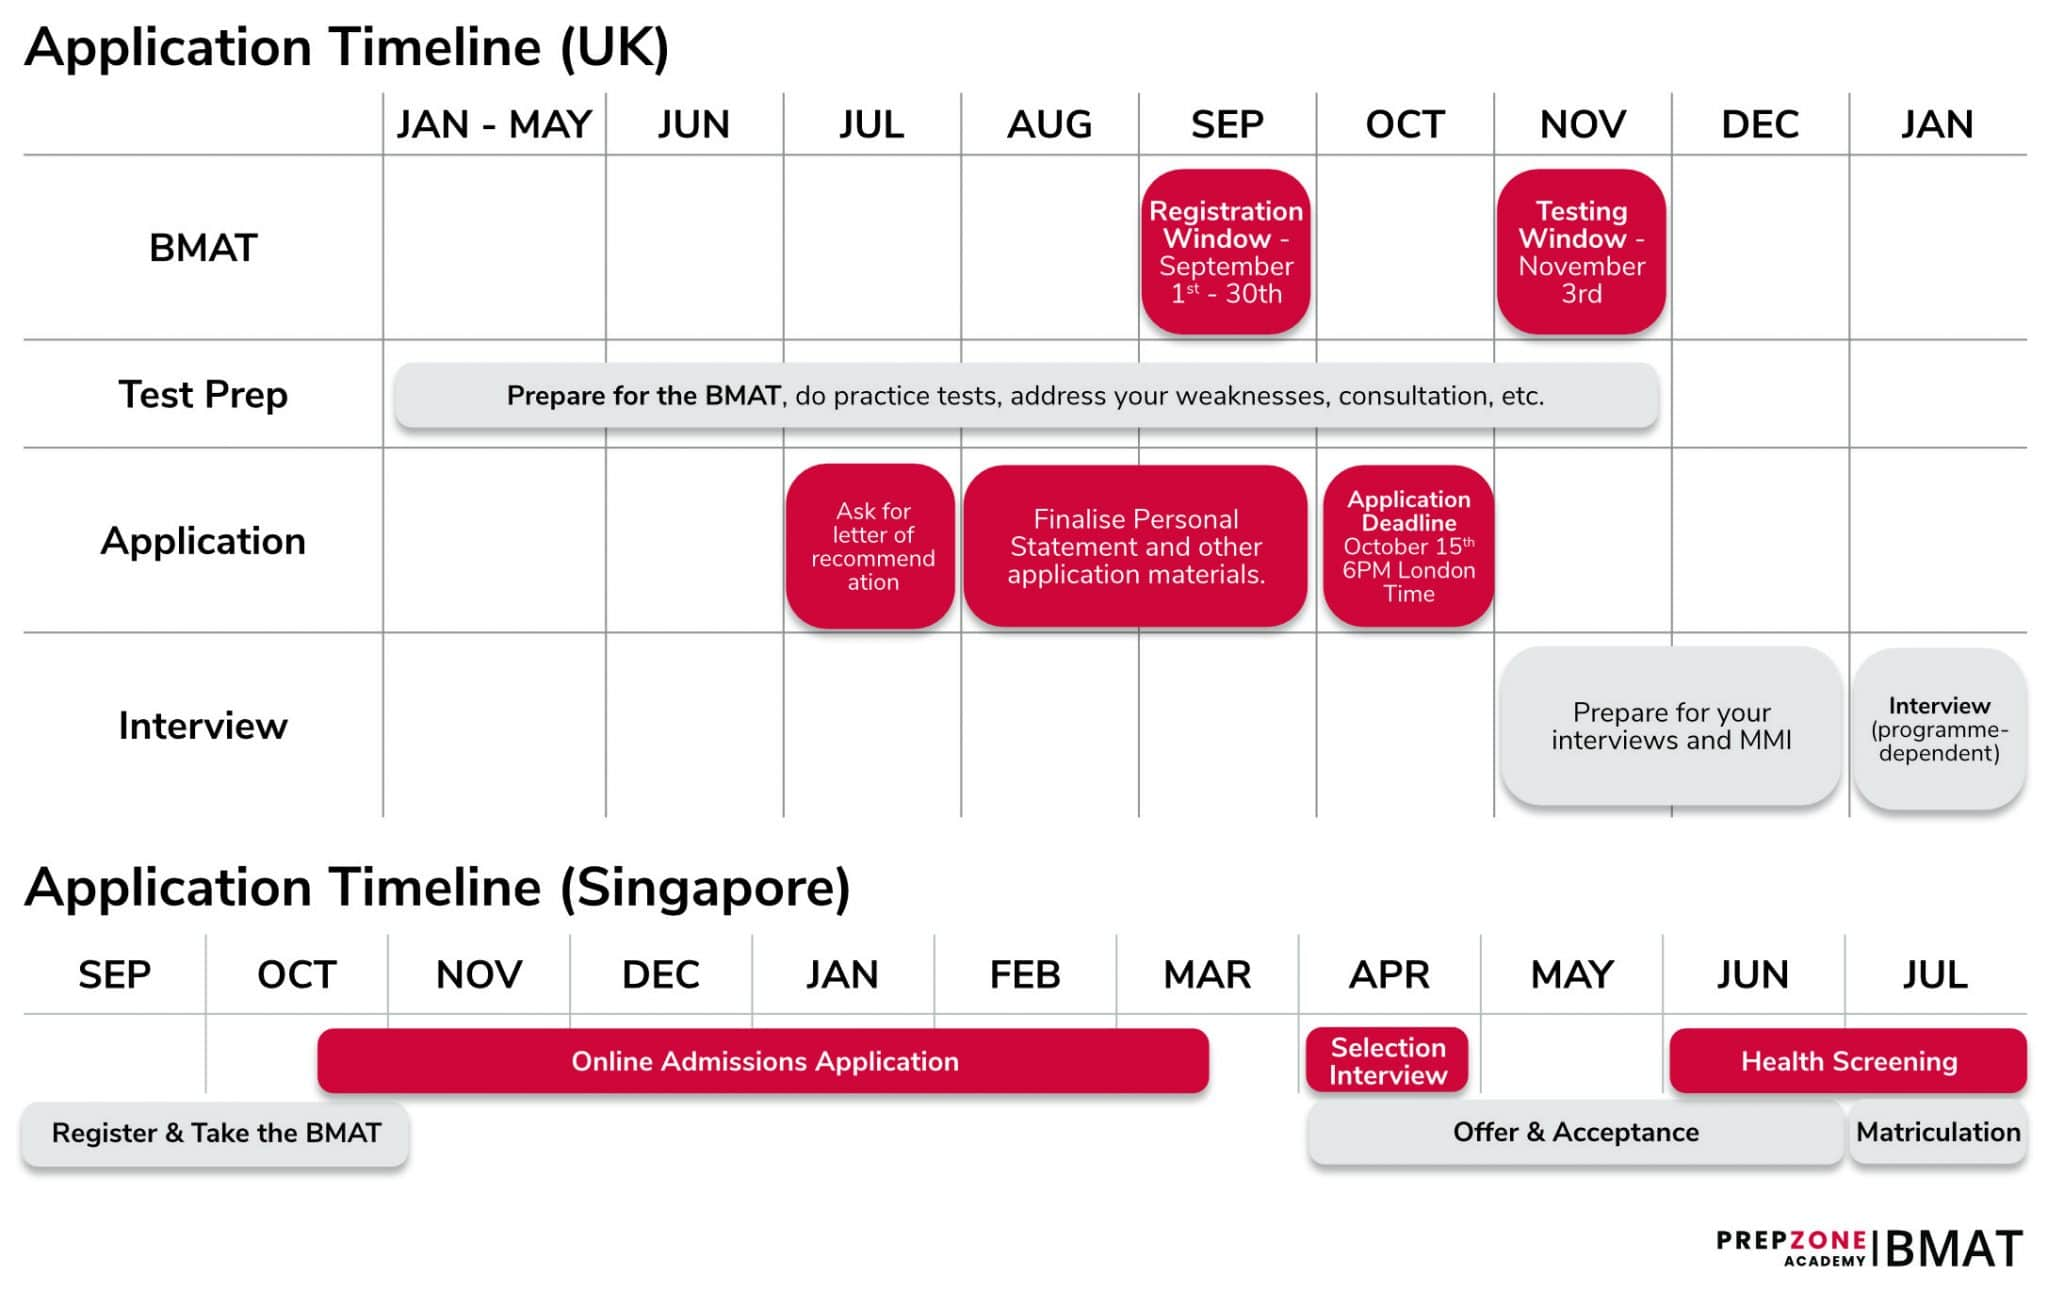 BMAT Application Timeline 2021 scaled